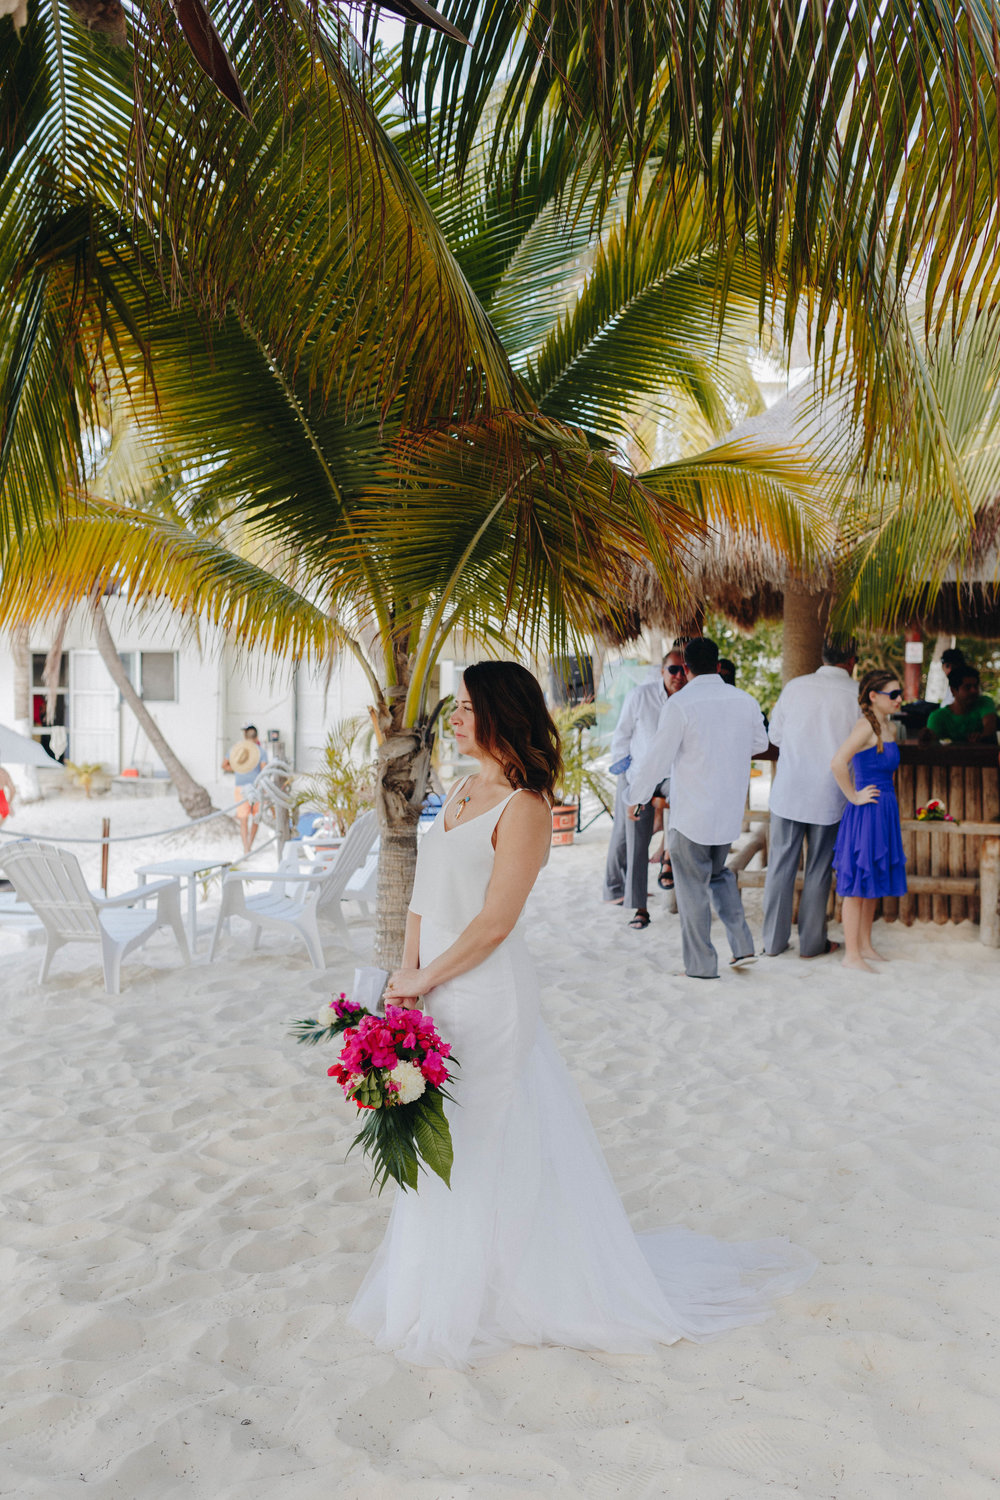 terwedo-destination-wedding-isla-mujeres-blog-132.jpg